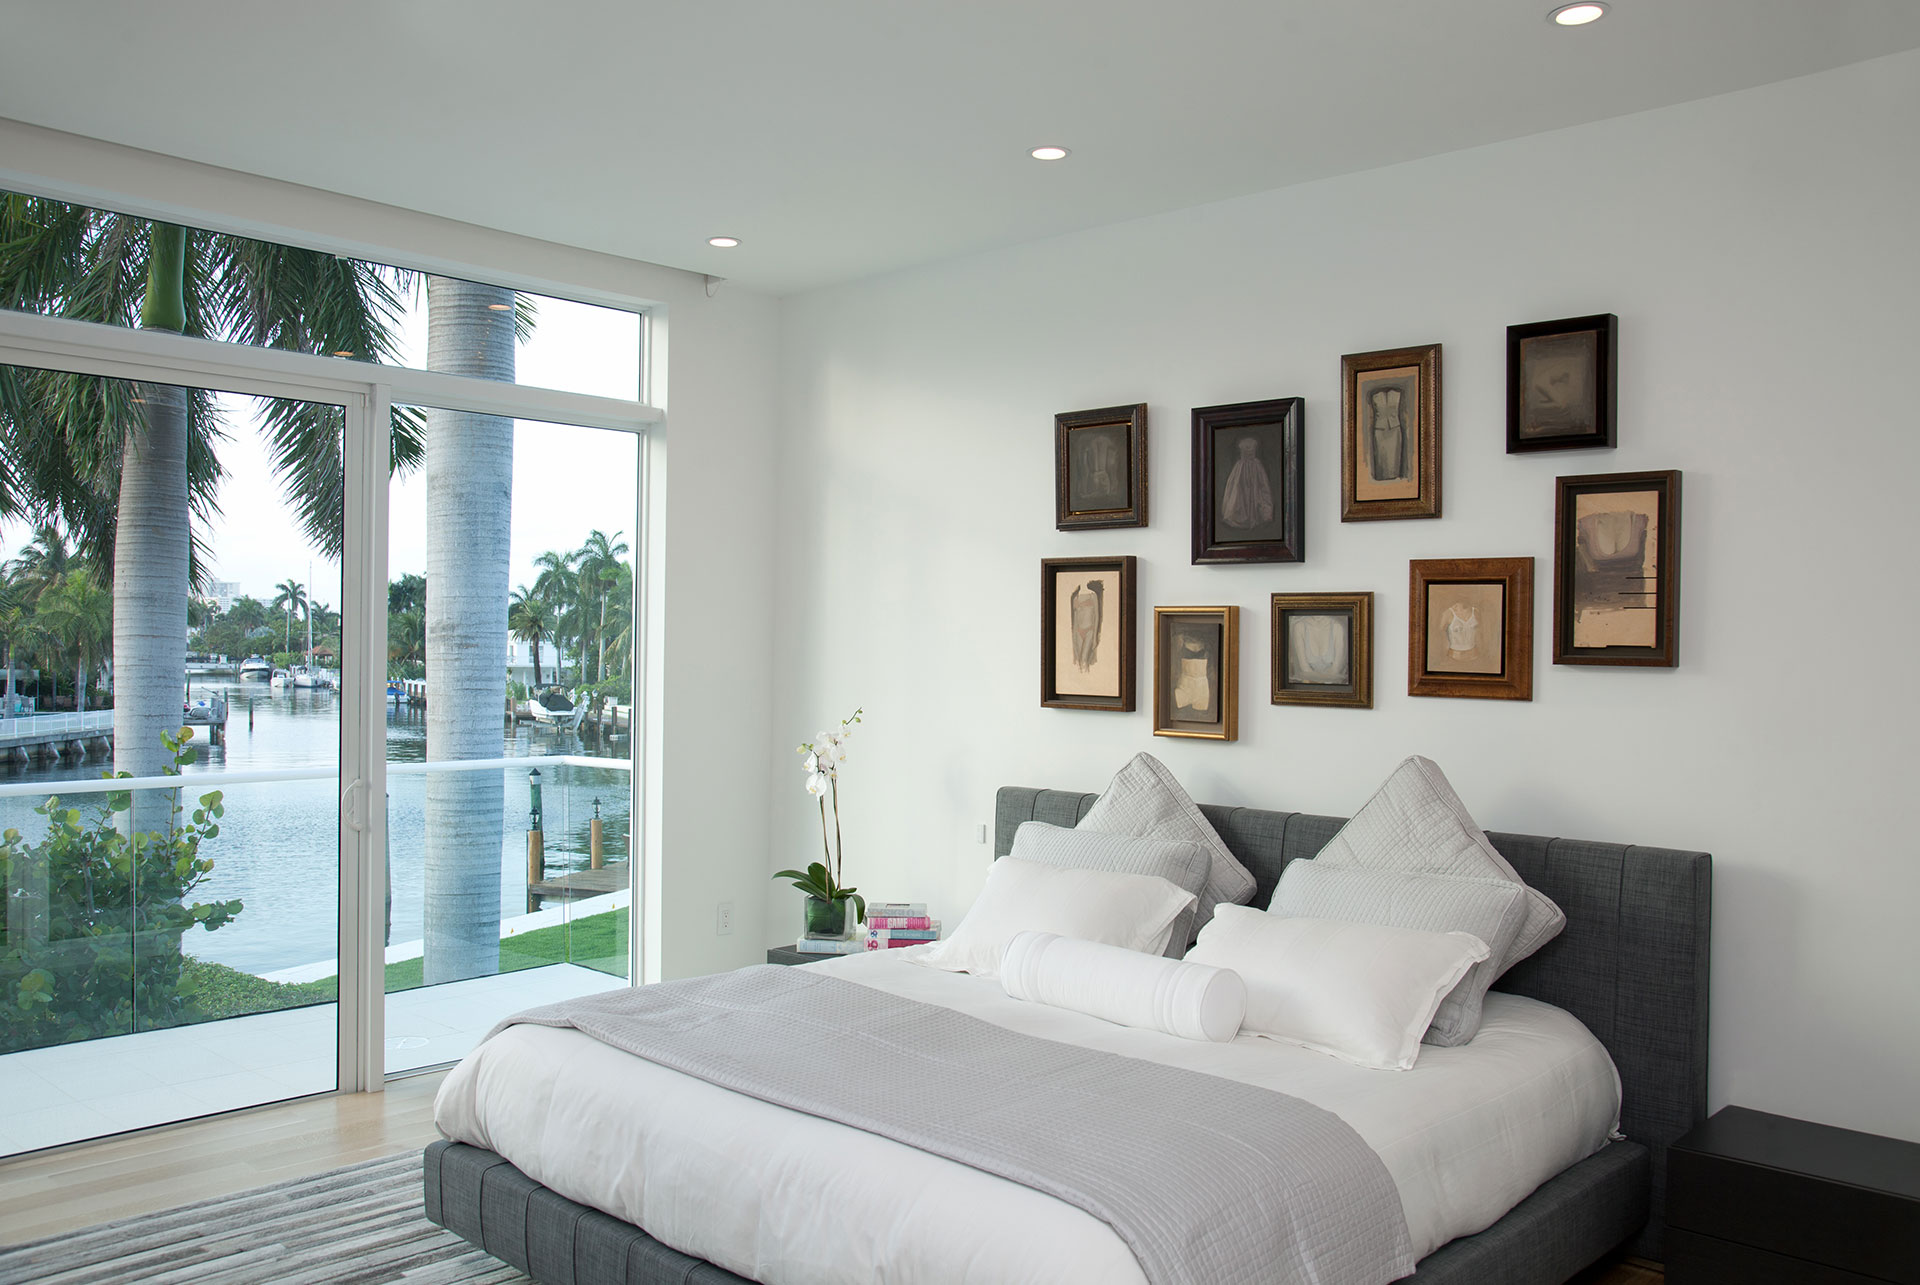 Interior Design bedroom view project in 96 Golden Beach Drive, Florida